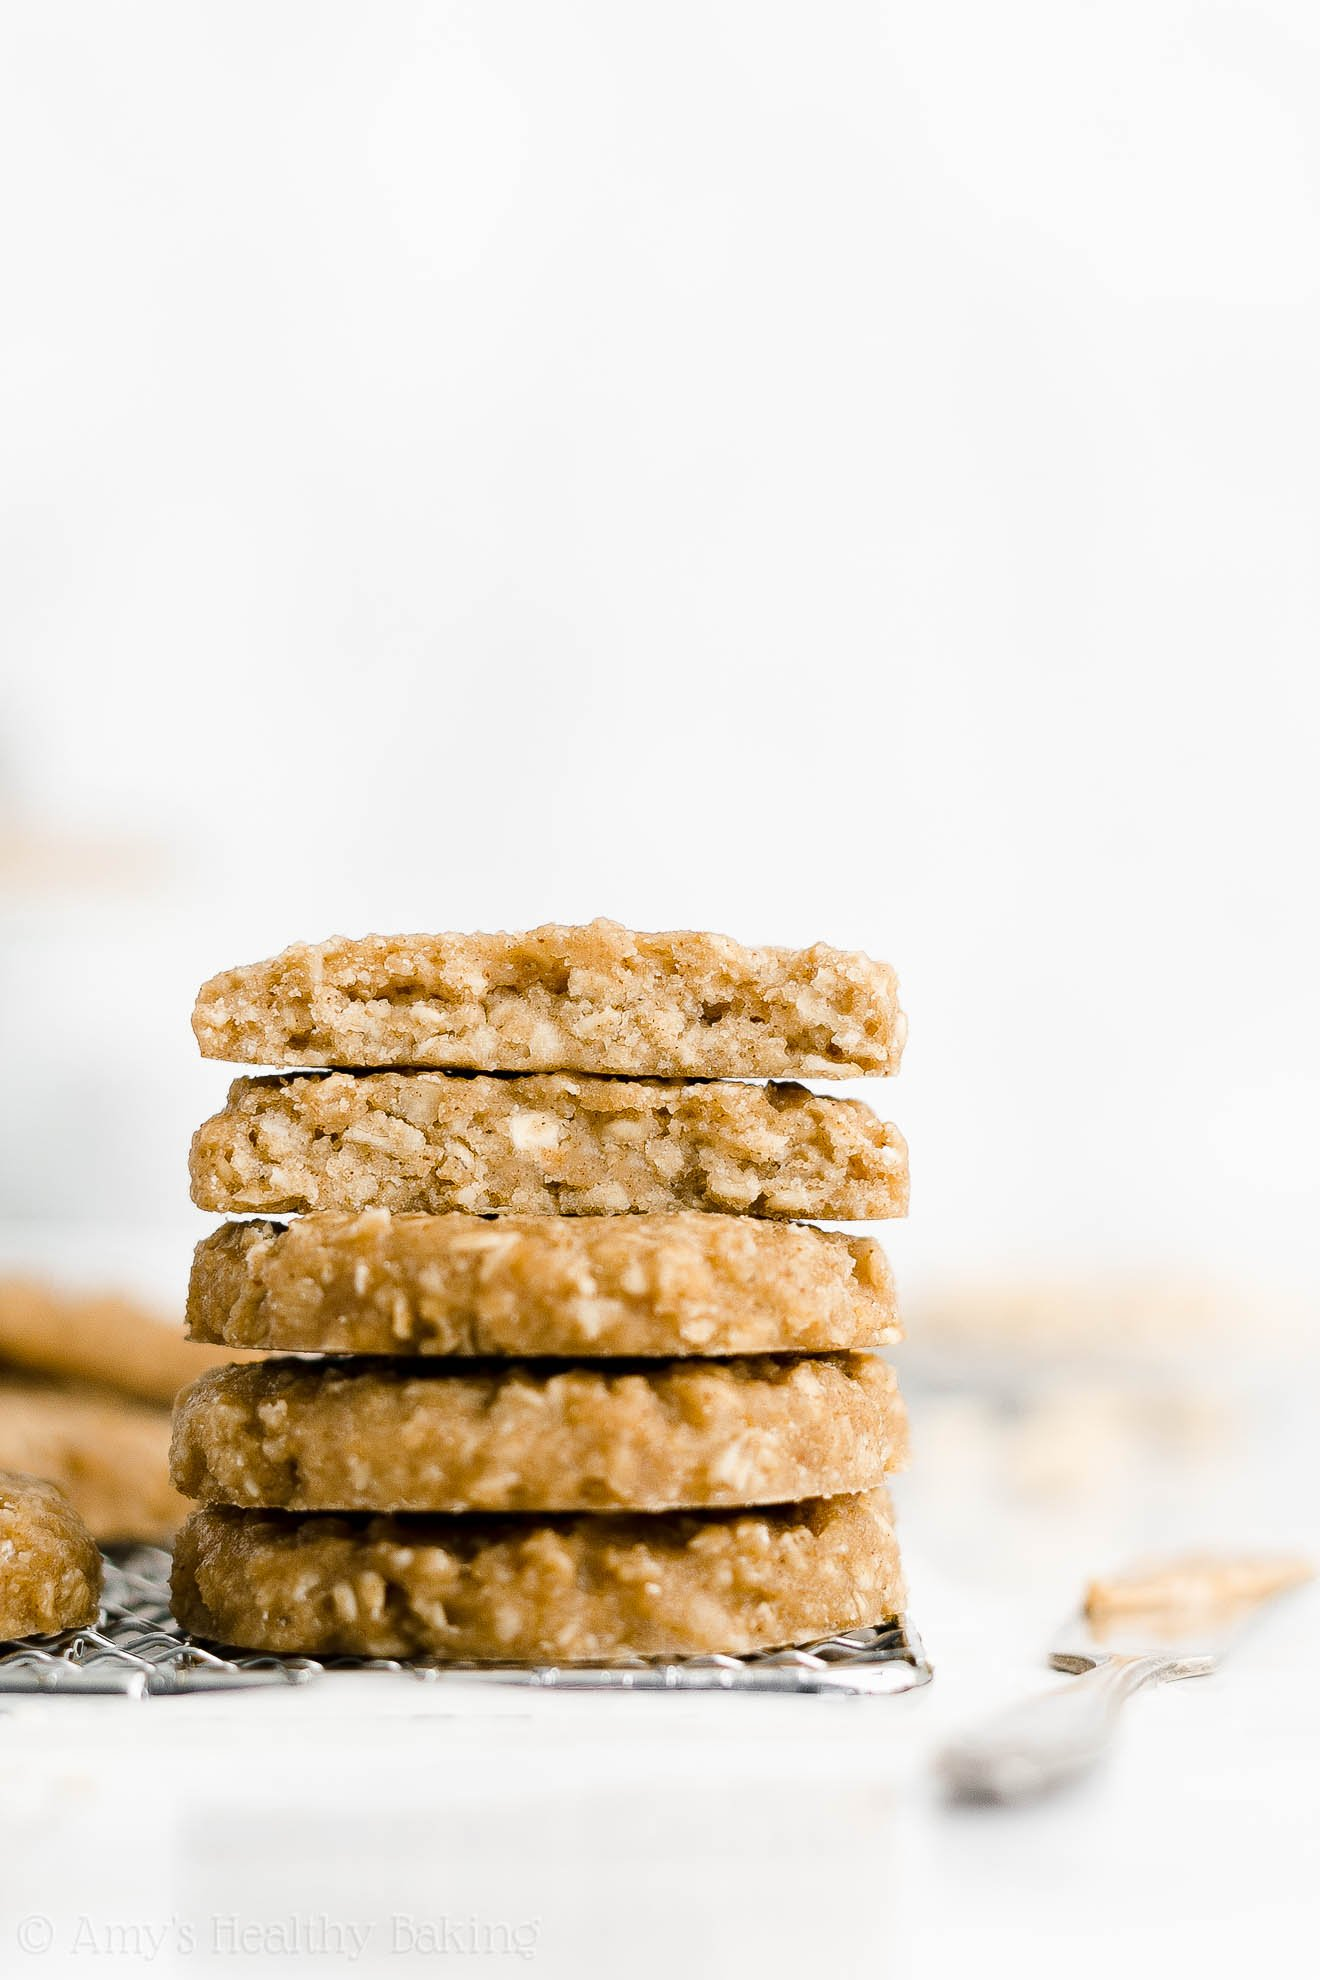 Easy Healthy Low Fat Eggless Dairy Free Chewy Peanut Butter Breakfast Cookies